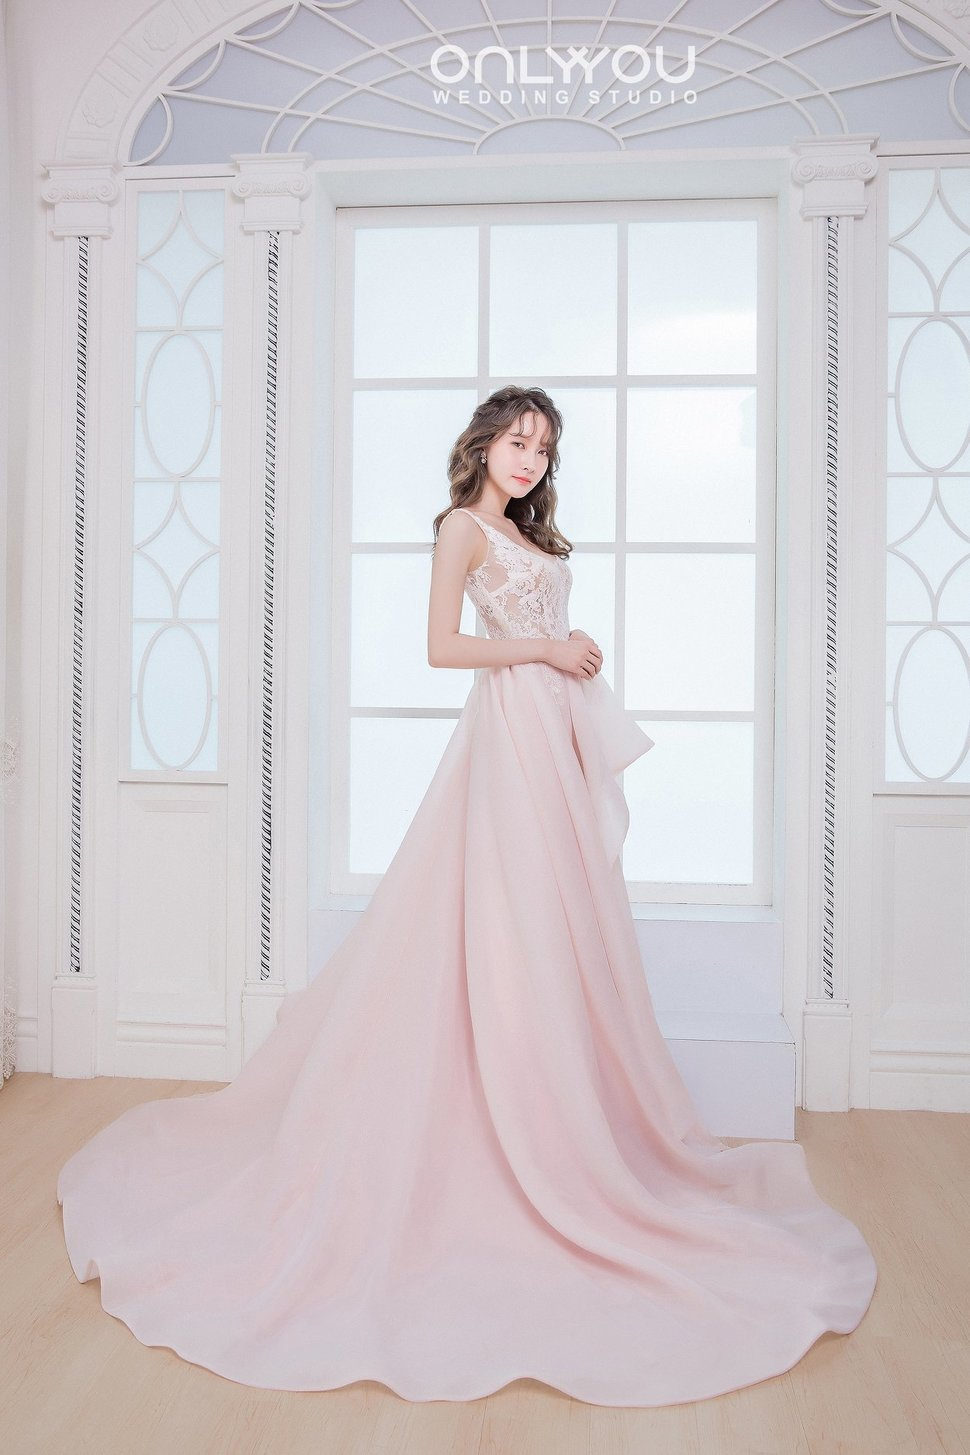 67907605_2310588172330149_3554230723298721792_o - ONLY YOU 唯你婚紗攝影《結婚吧》